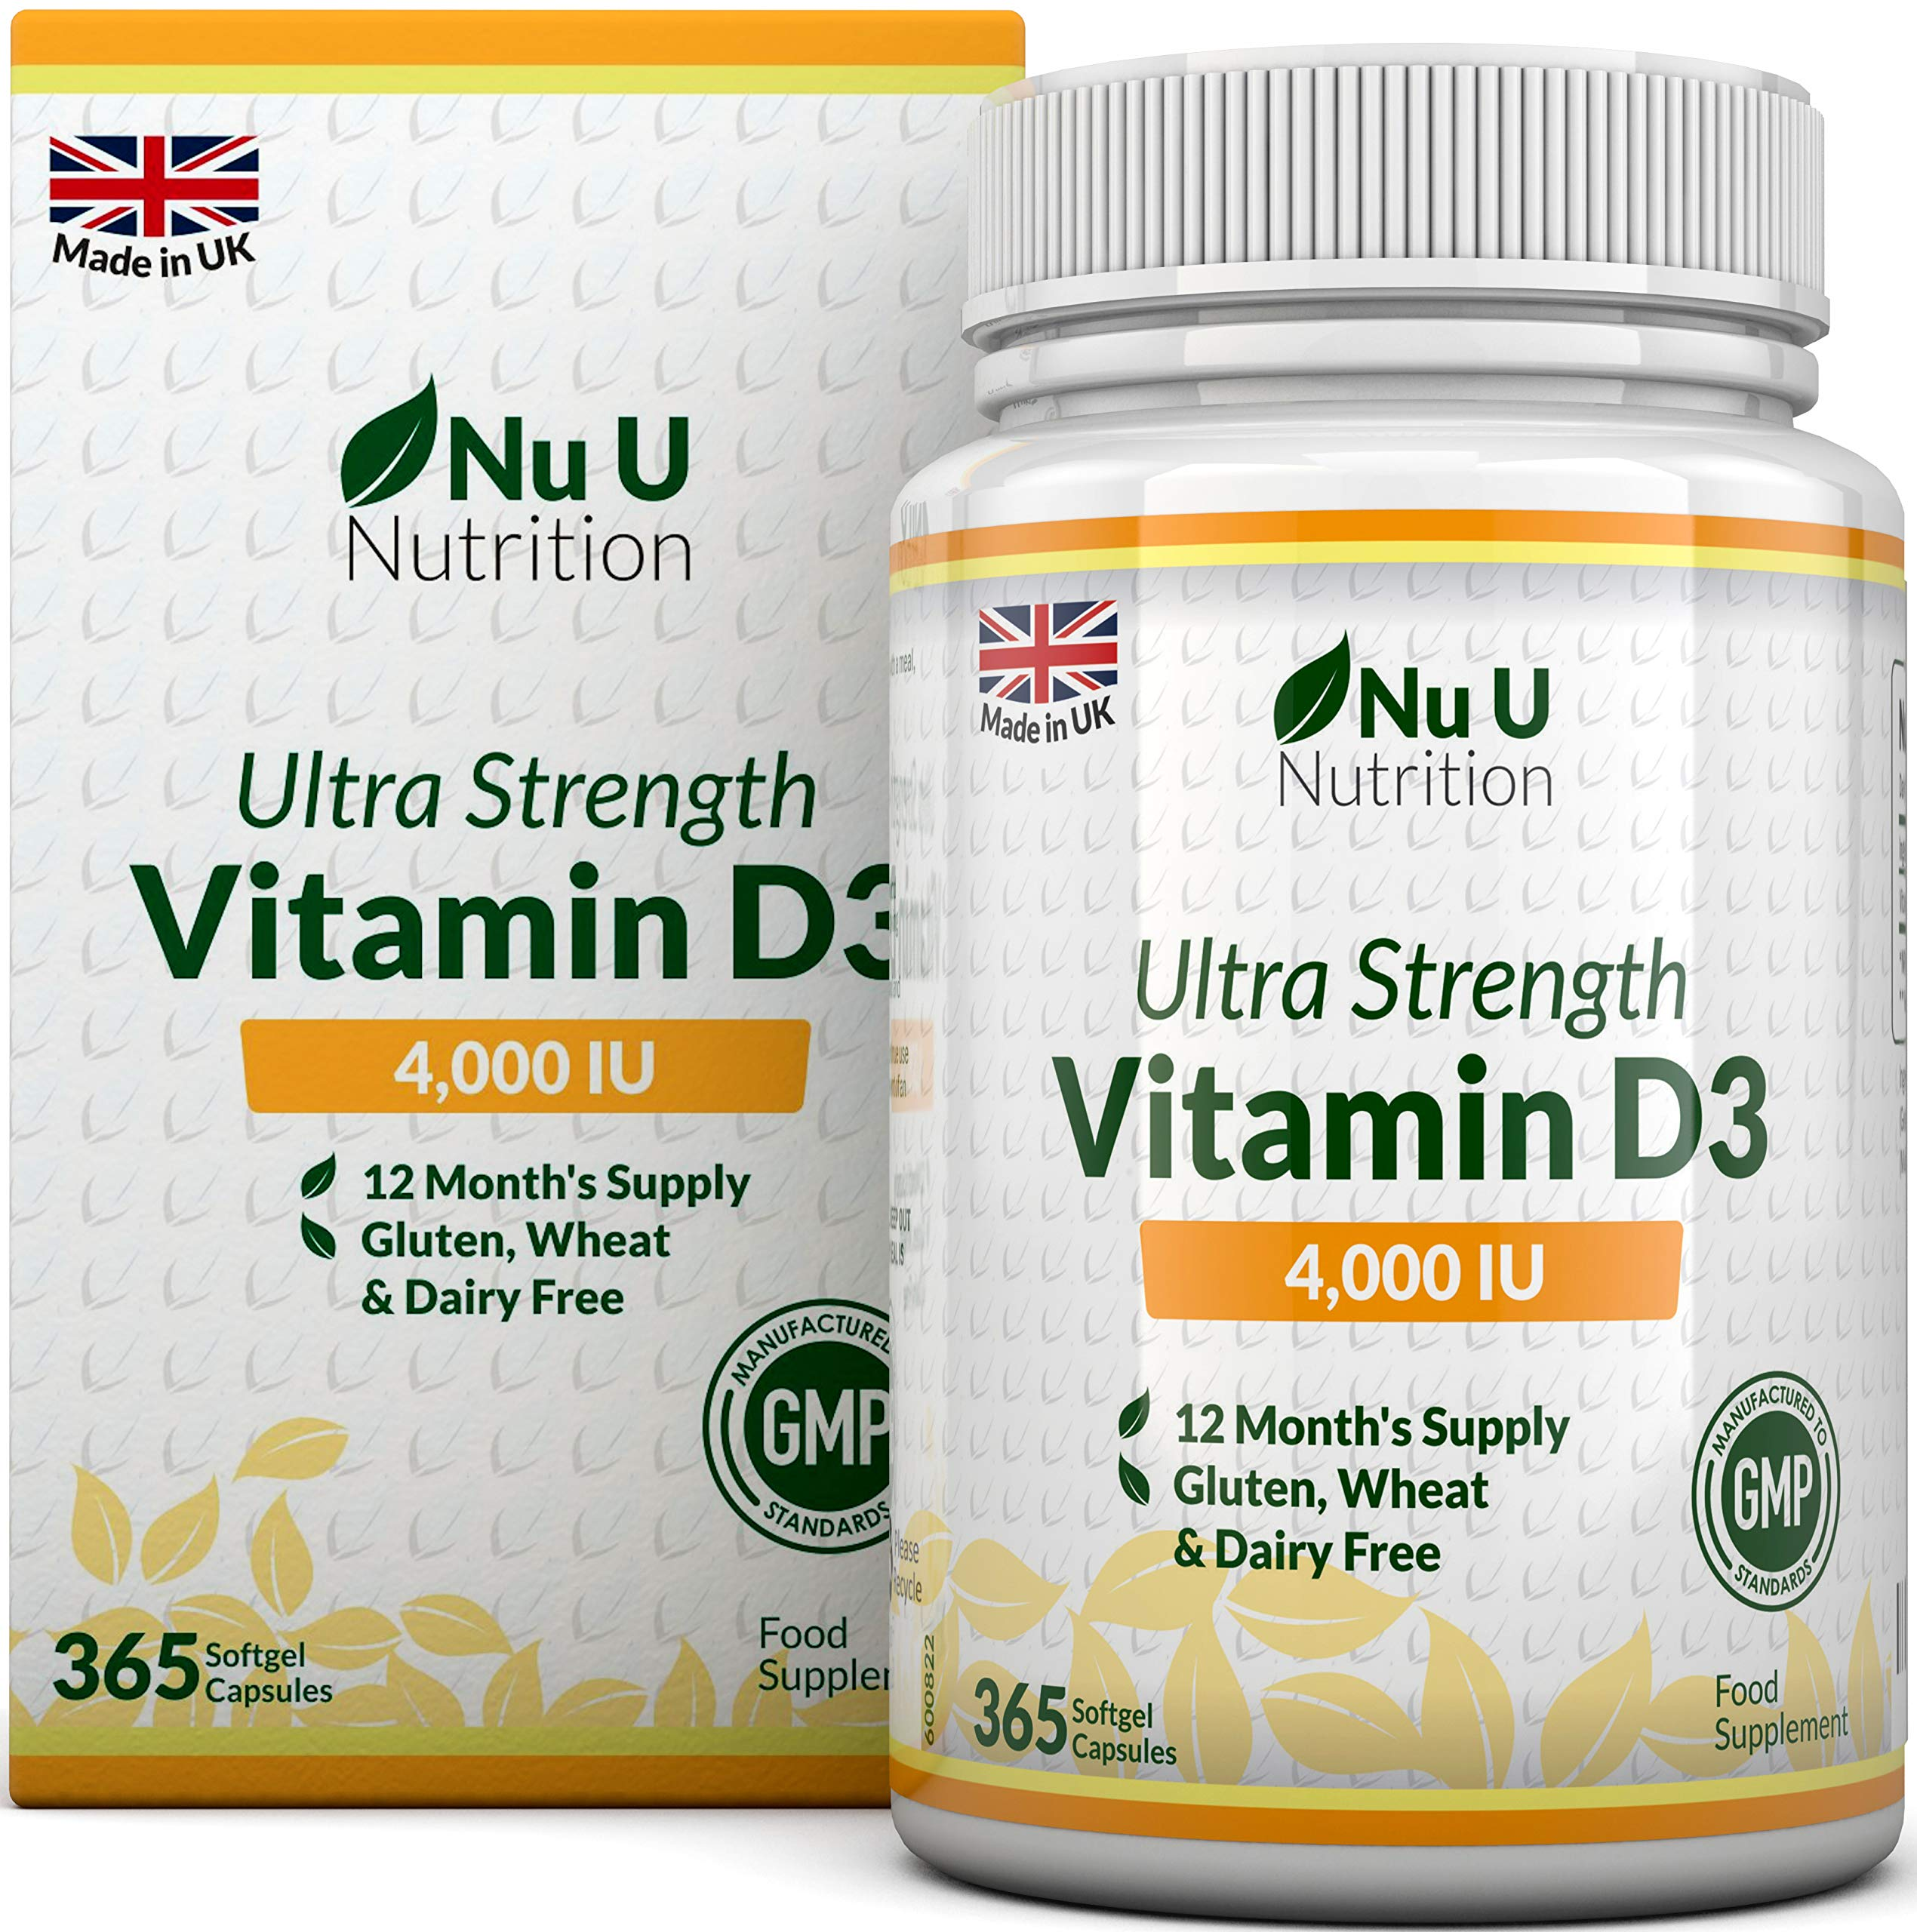 Vitamin D 4000 IU | 365 Softgel Capsules NOT Tablets - Full Year Supply | Easy to Swallow Quadruple Strength Vitamin D3 Supplement | Highly Bioavailable Cholecalciferol | Gluten & Dairy Free product image